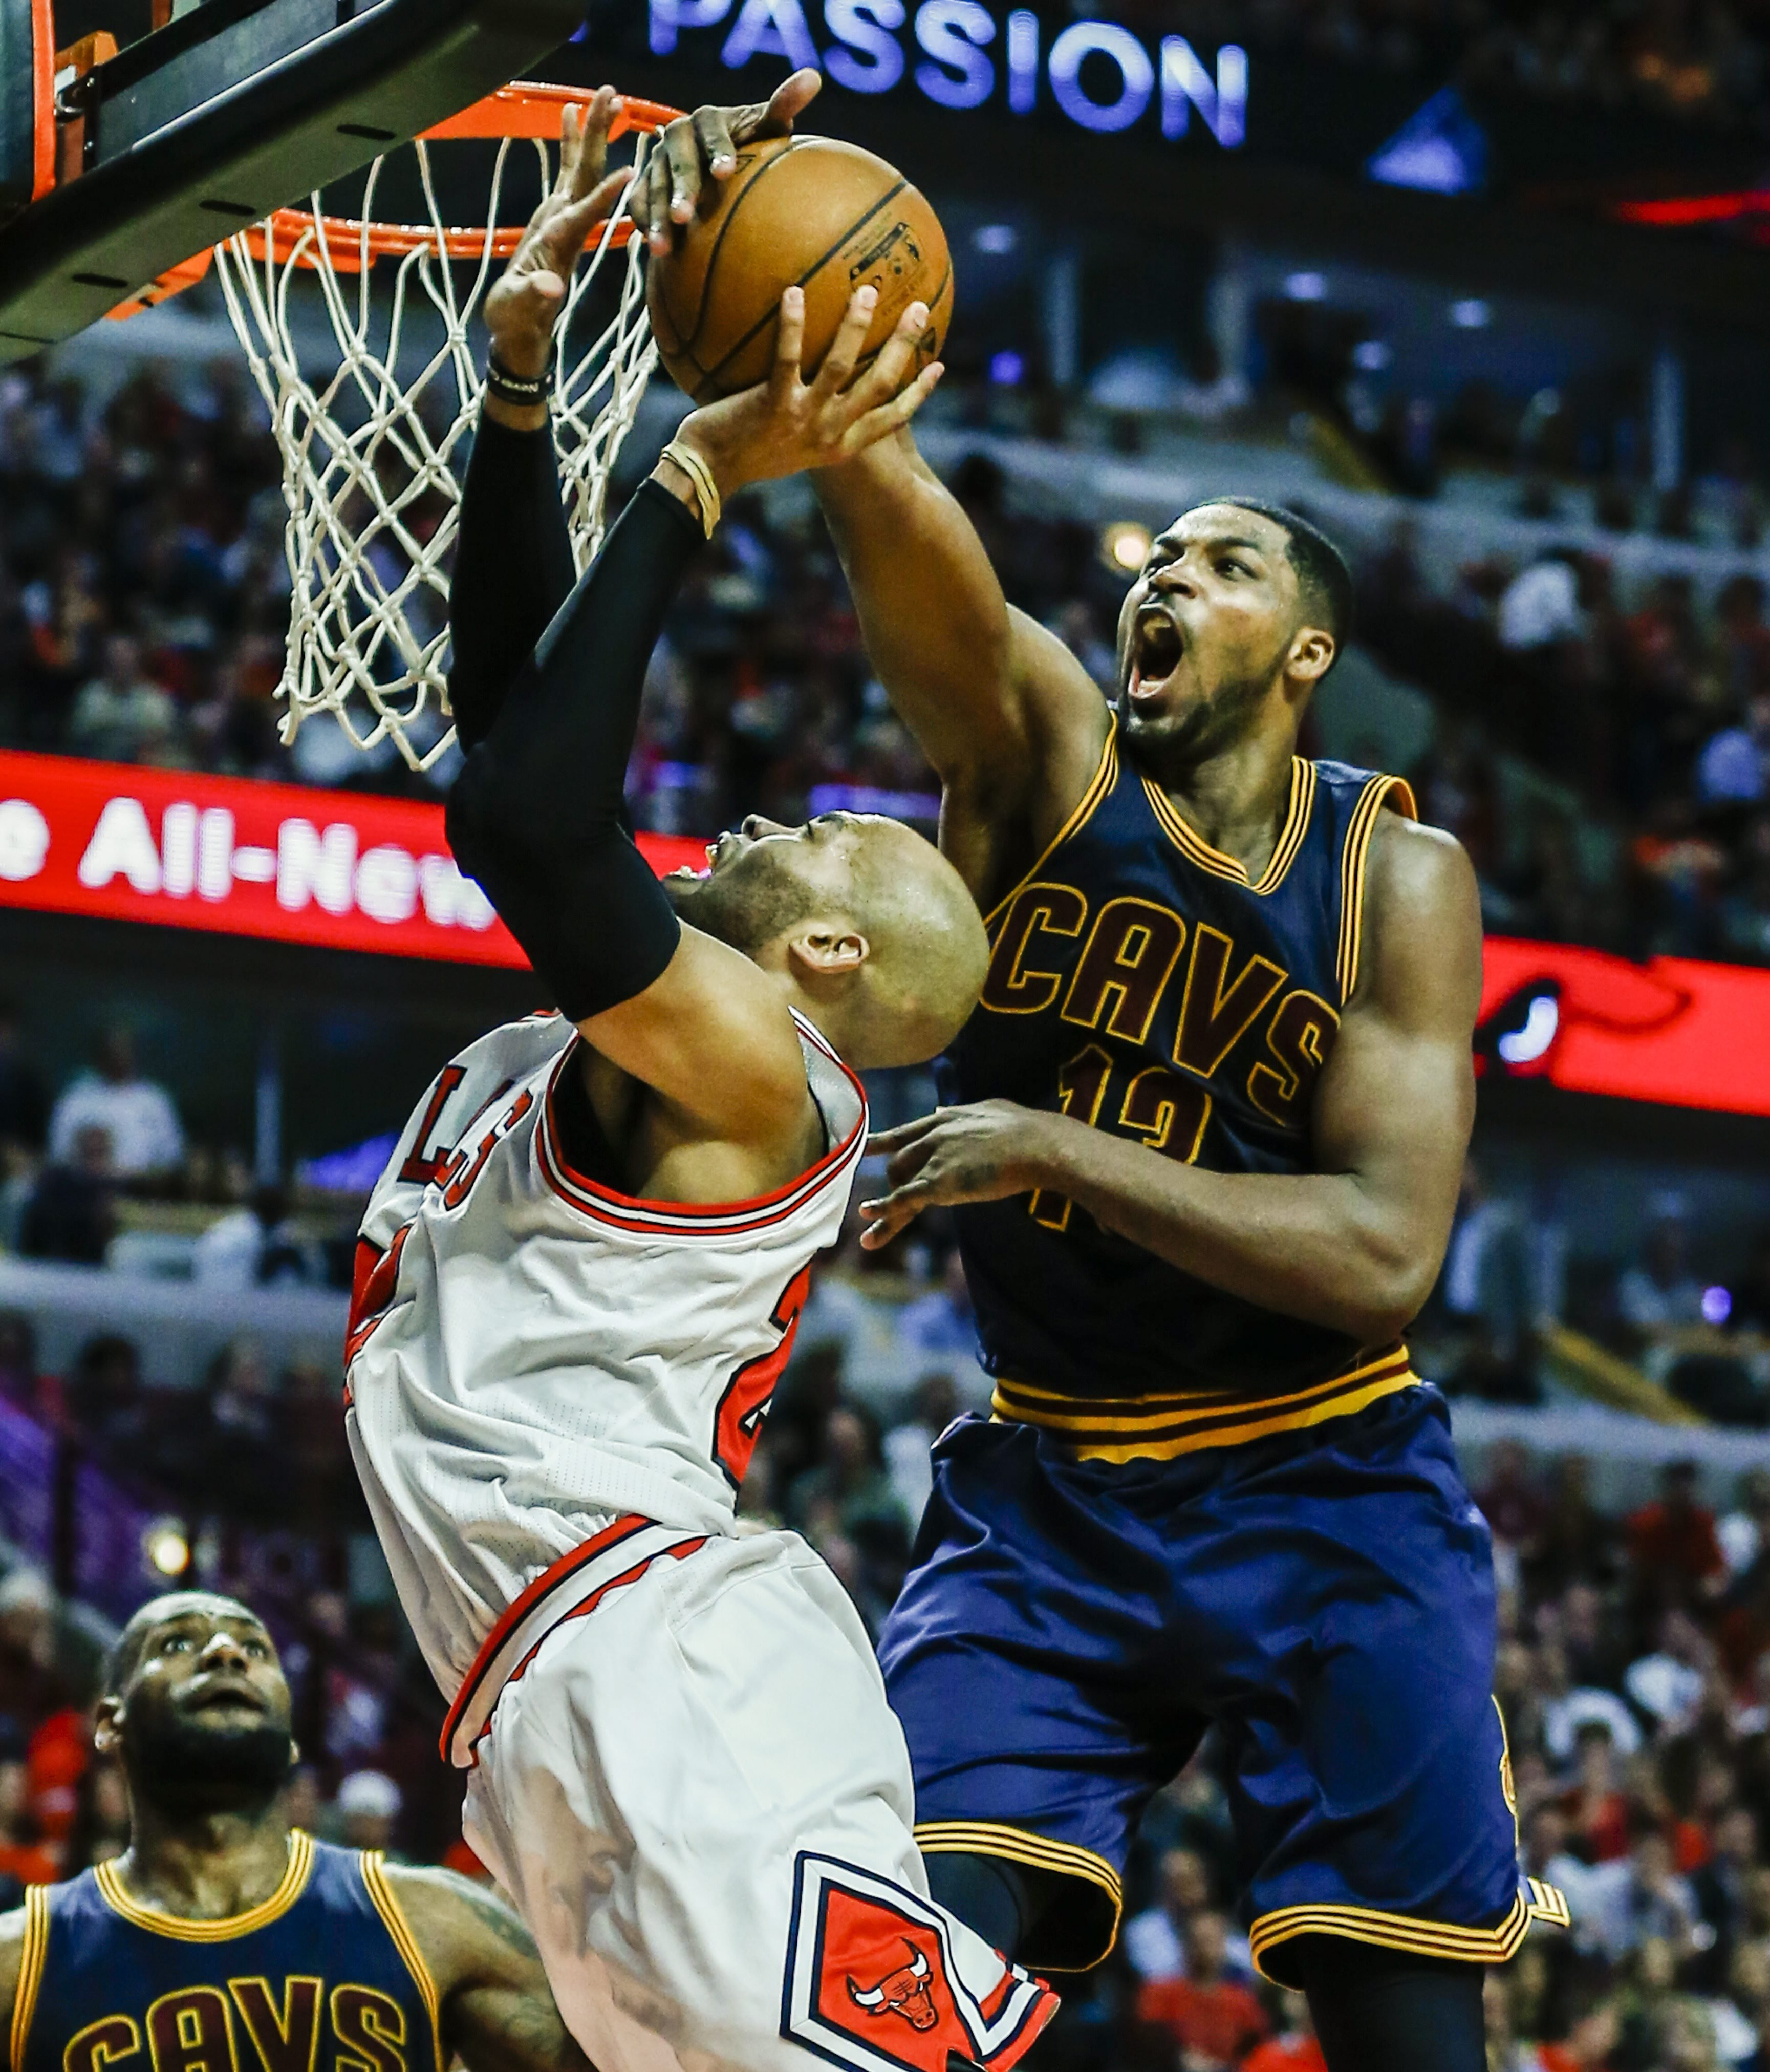 history of basketball essays Basketball has always been my favorite sport basketball was invented by james naismith in 1839 t.